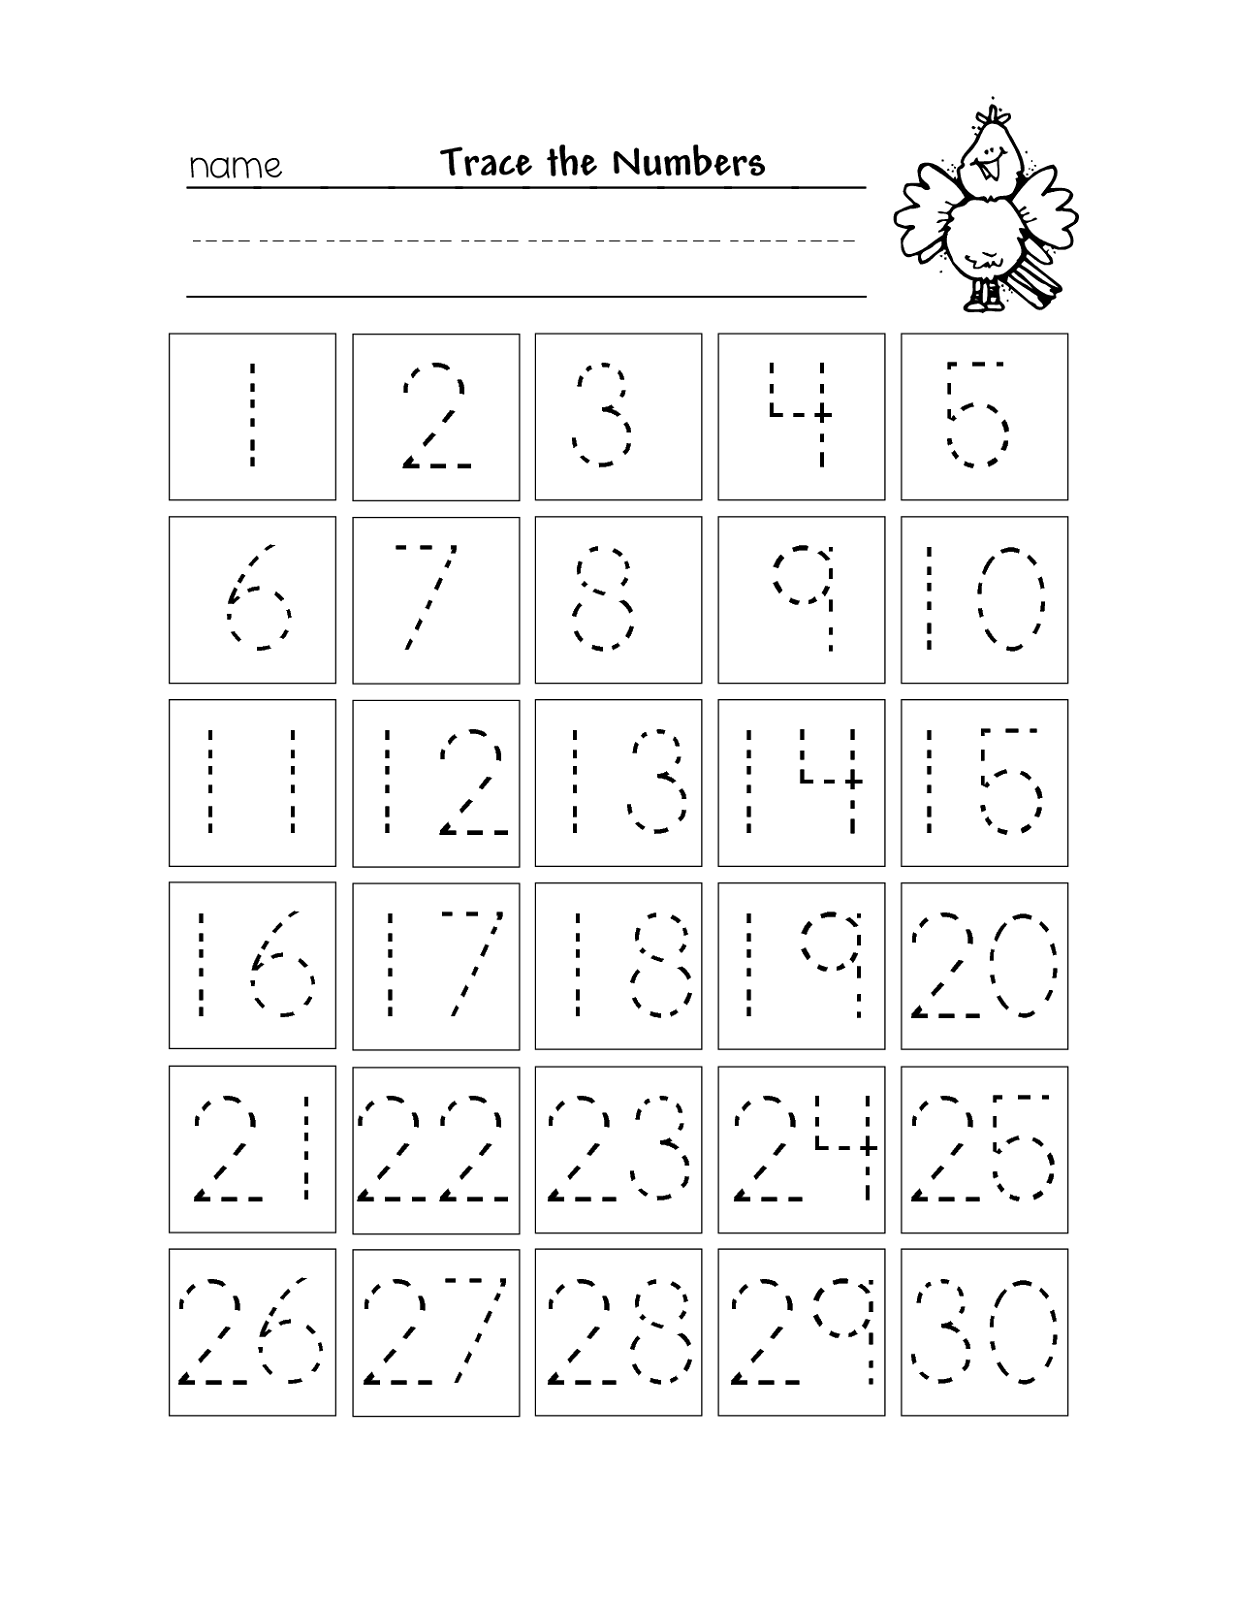 free printable number chart 1 30 kinder kindergarten worksheets preschool writing numbers. Black Bedroom Furniture Sets. Home Design Ideas